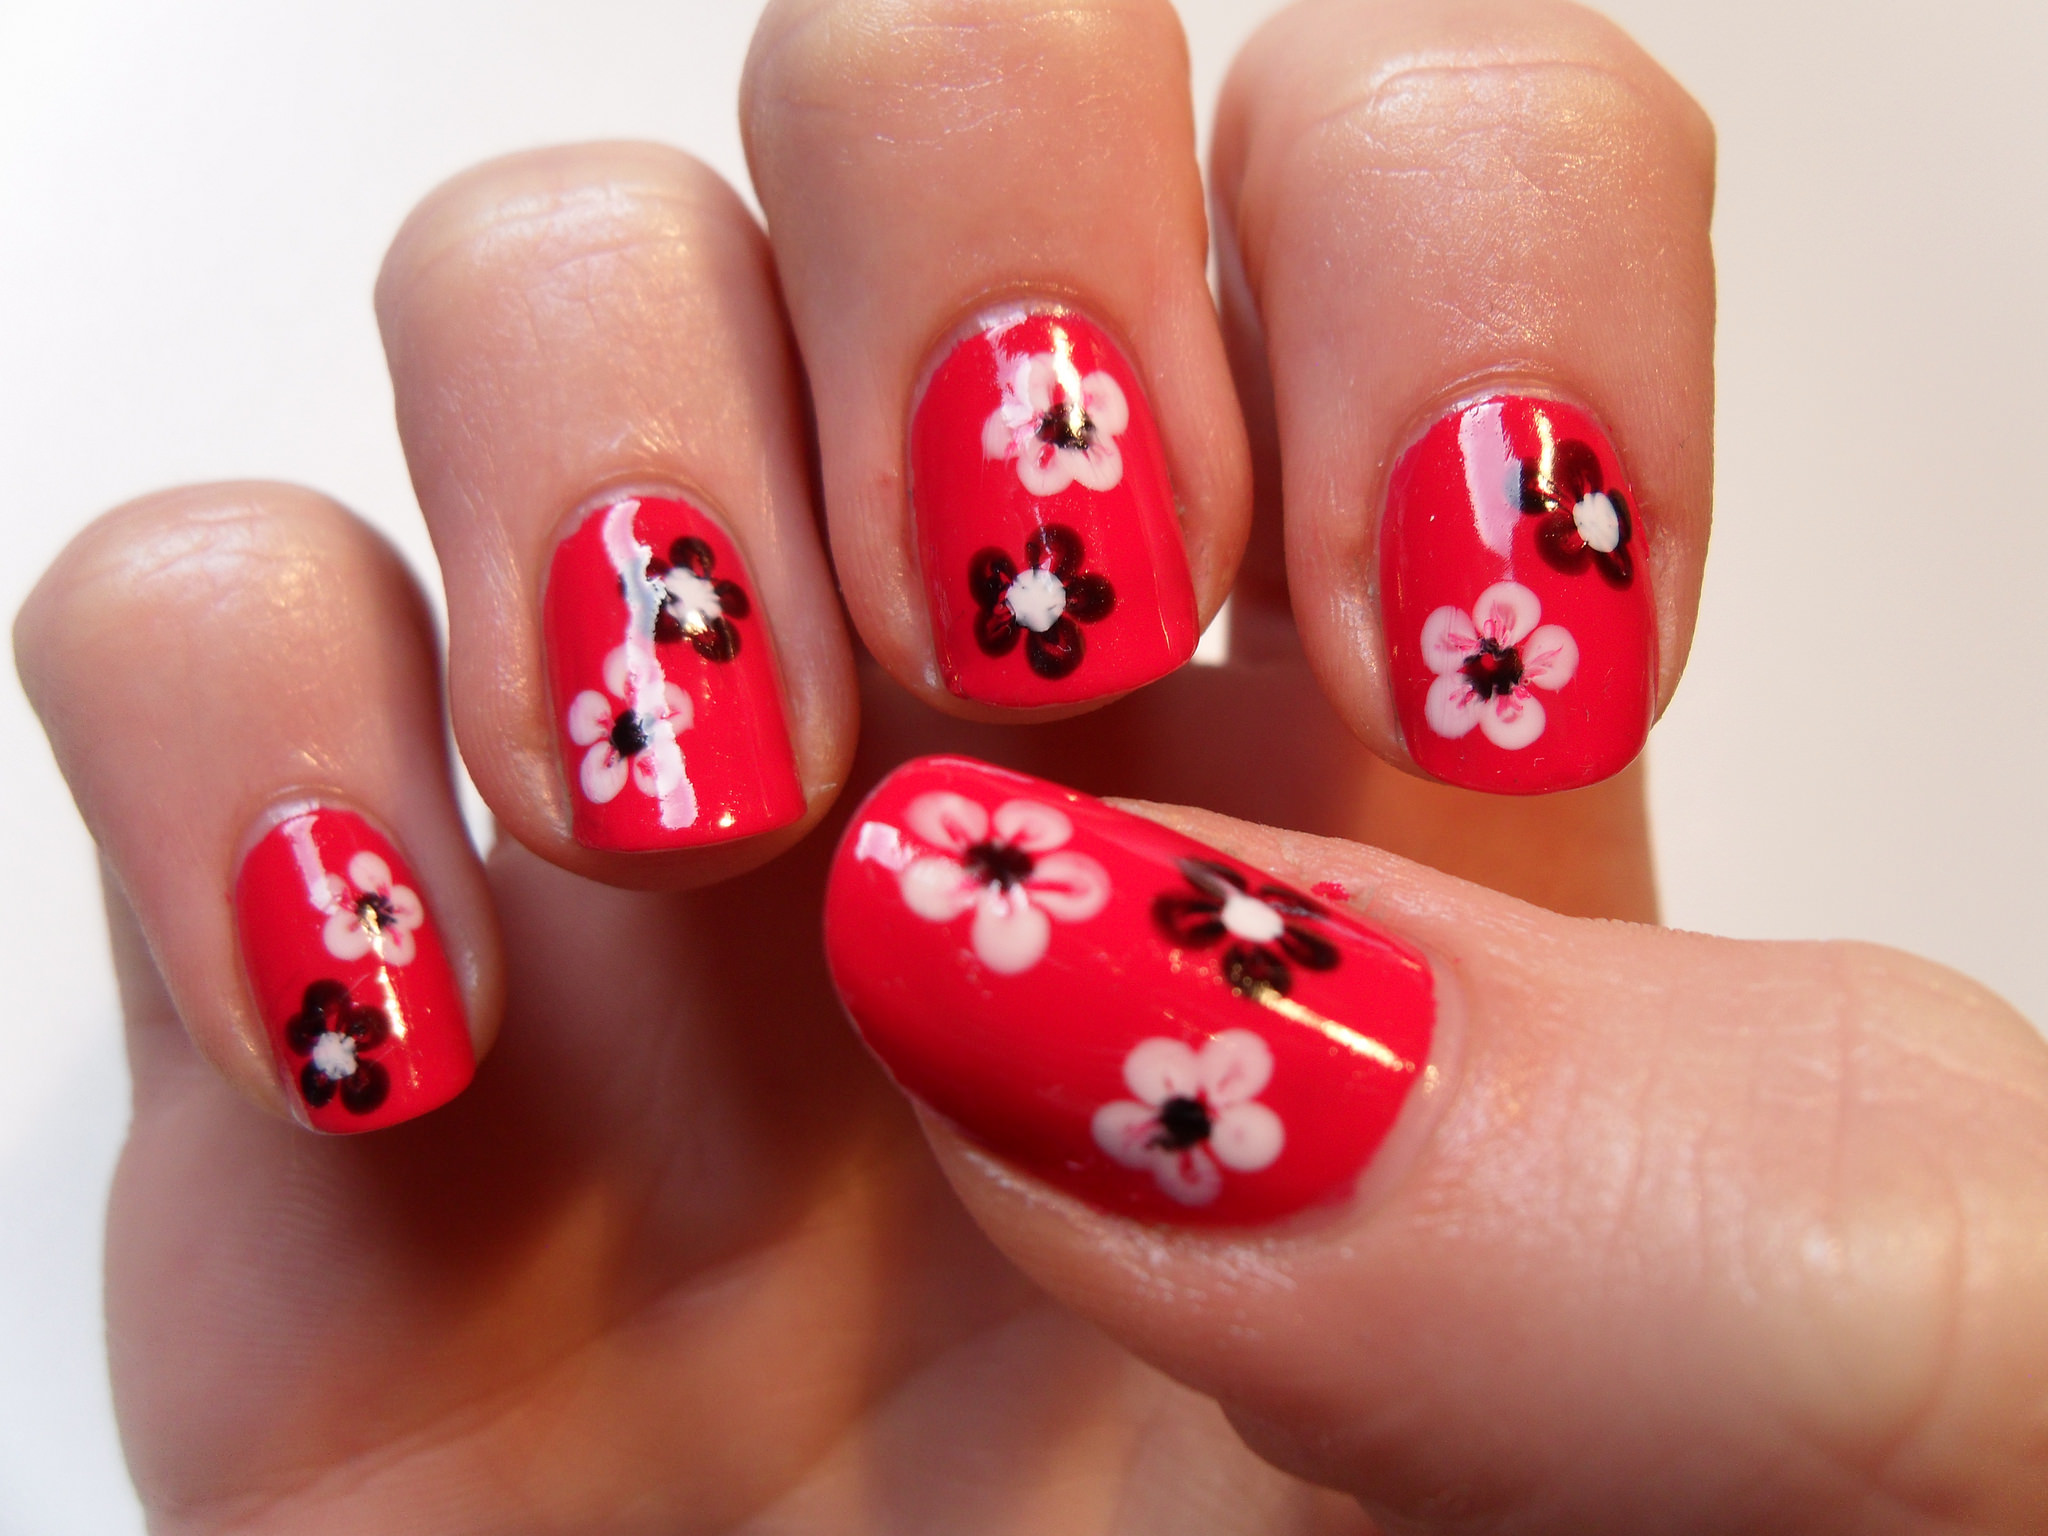 Red Floral Finger Nail Design